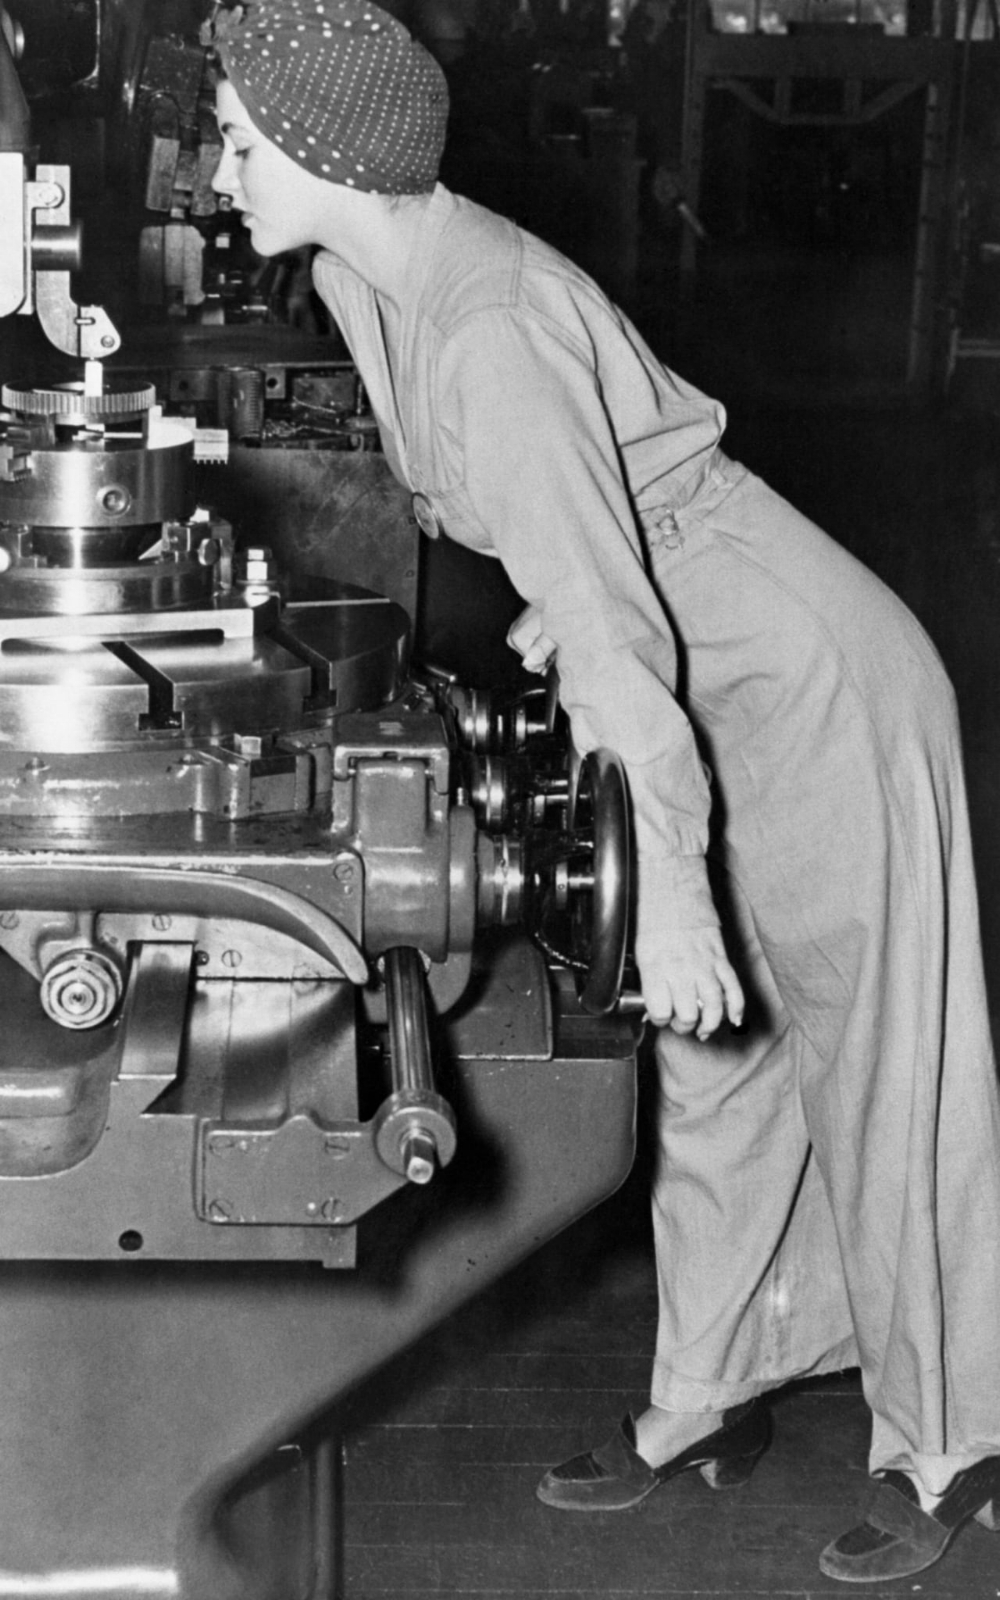 """Naomi Parker, the real-life """"Rosie the Riveter"""", 1942. The original caption read: """"Naomi wears heavy shoes, black suit, and a turban to keep her hair out of harm's way."""""""